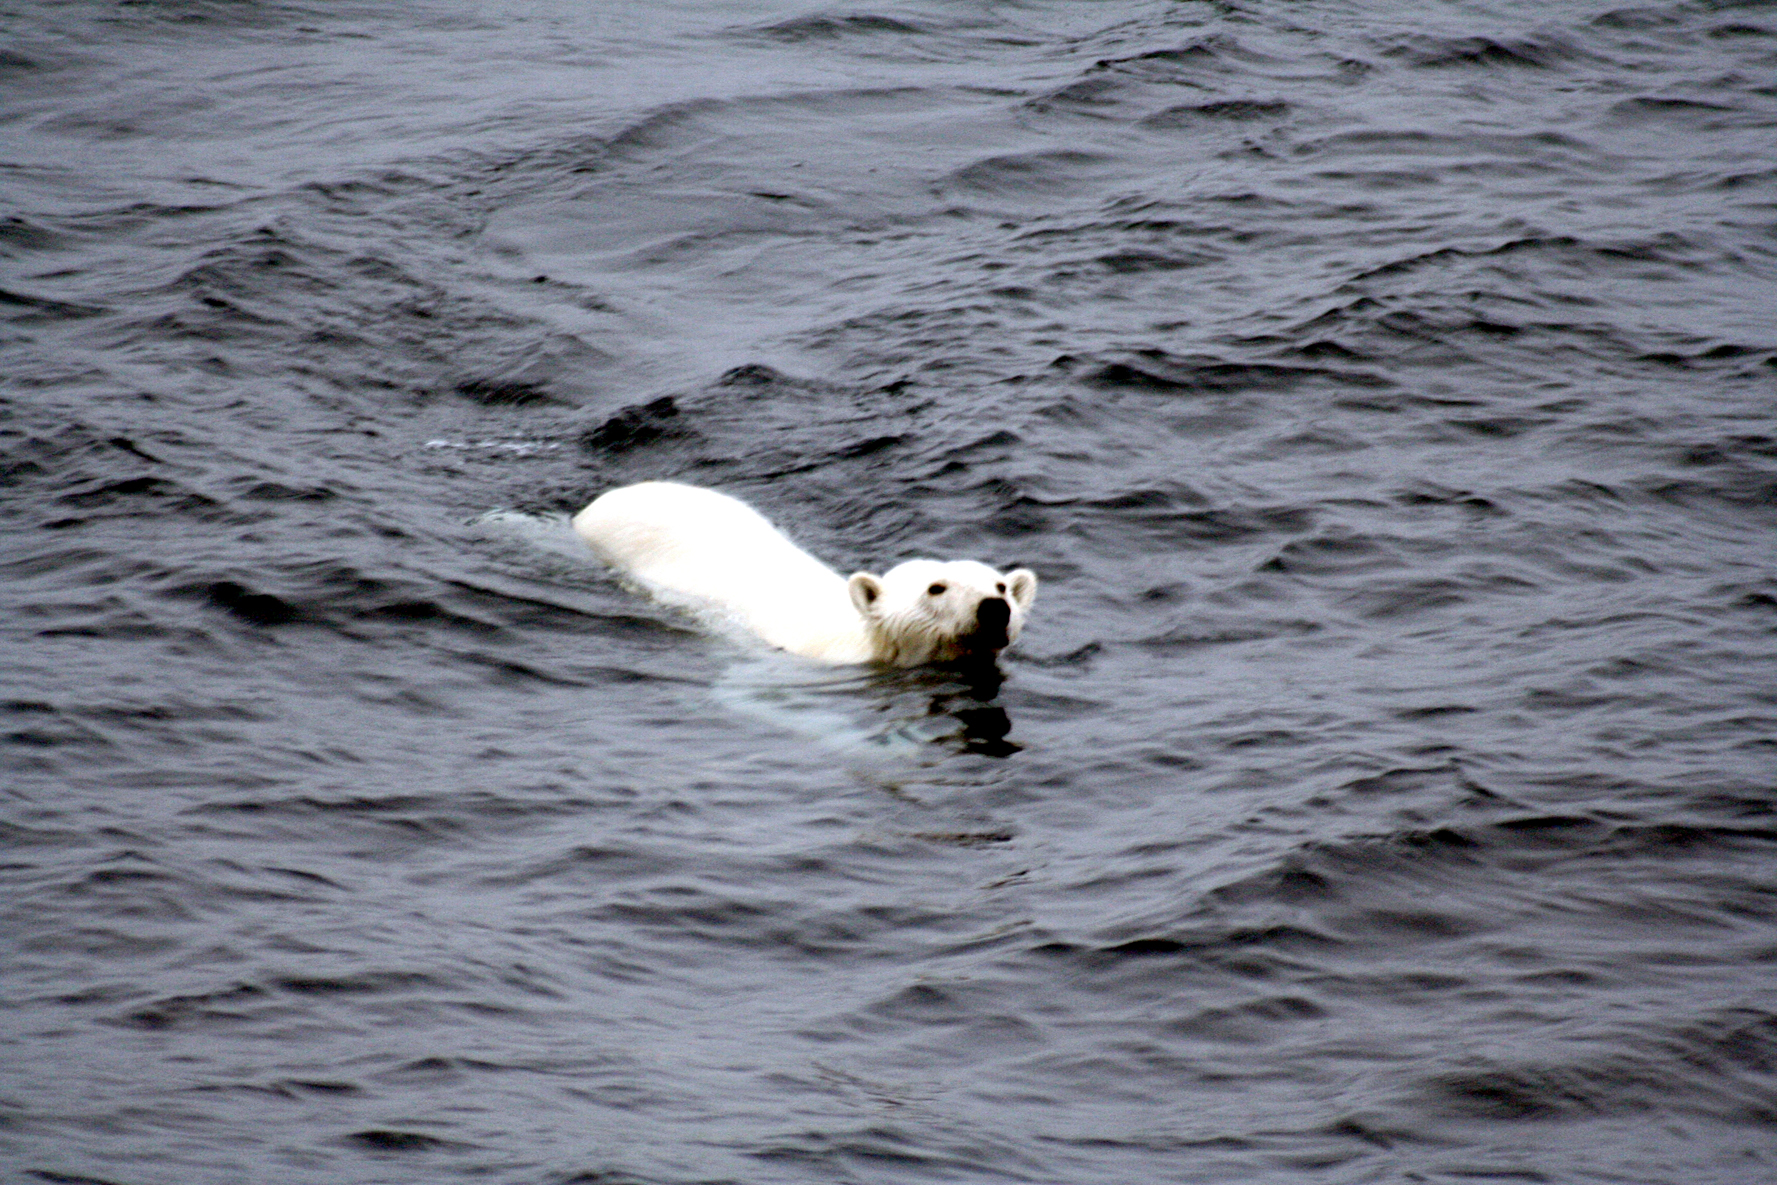 polar bear photo from M. Zinkova